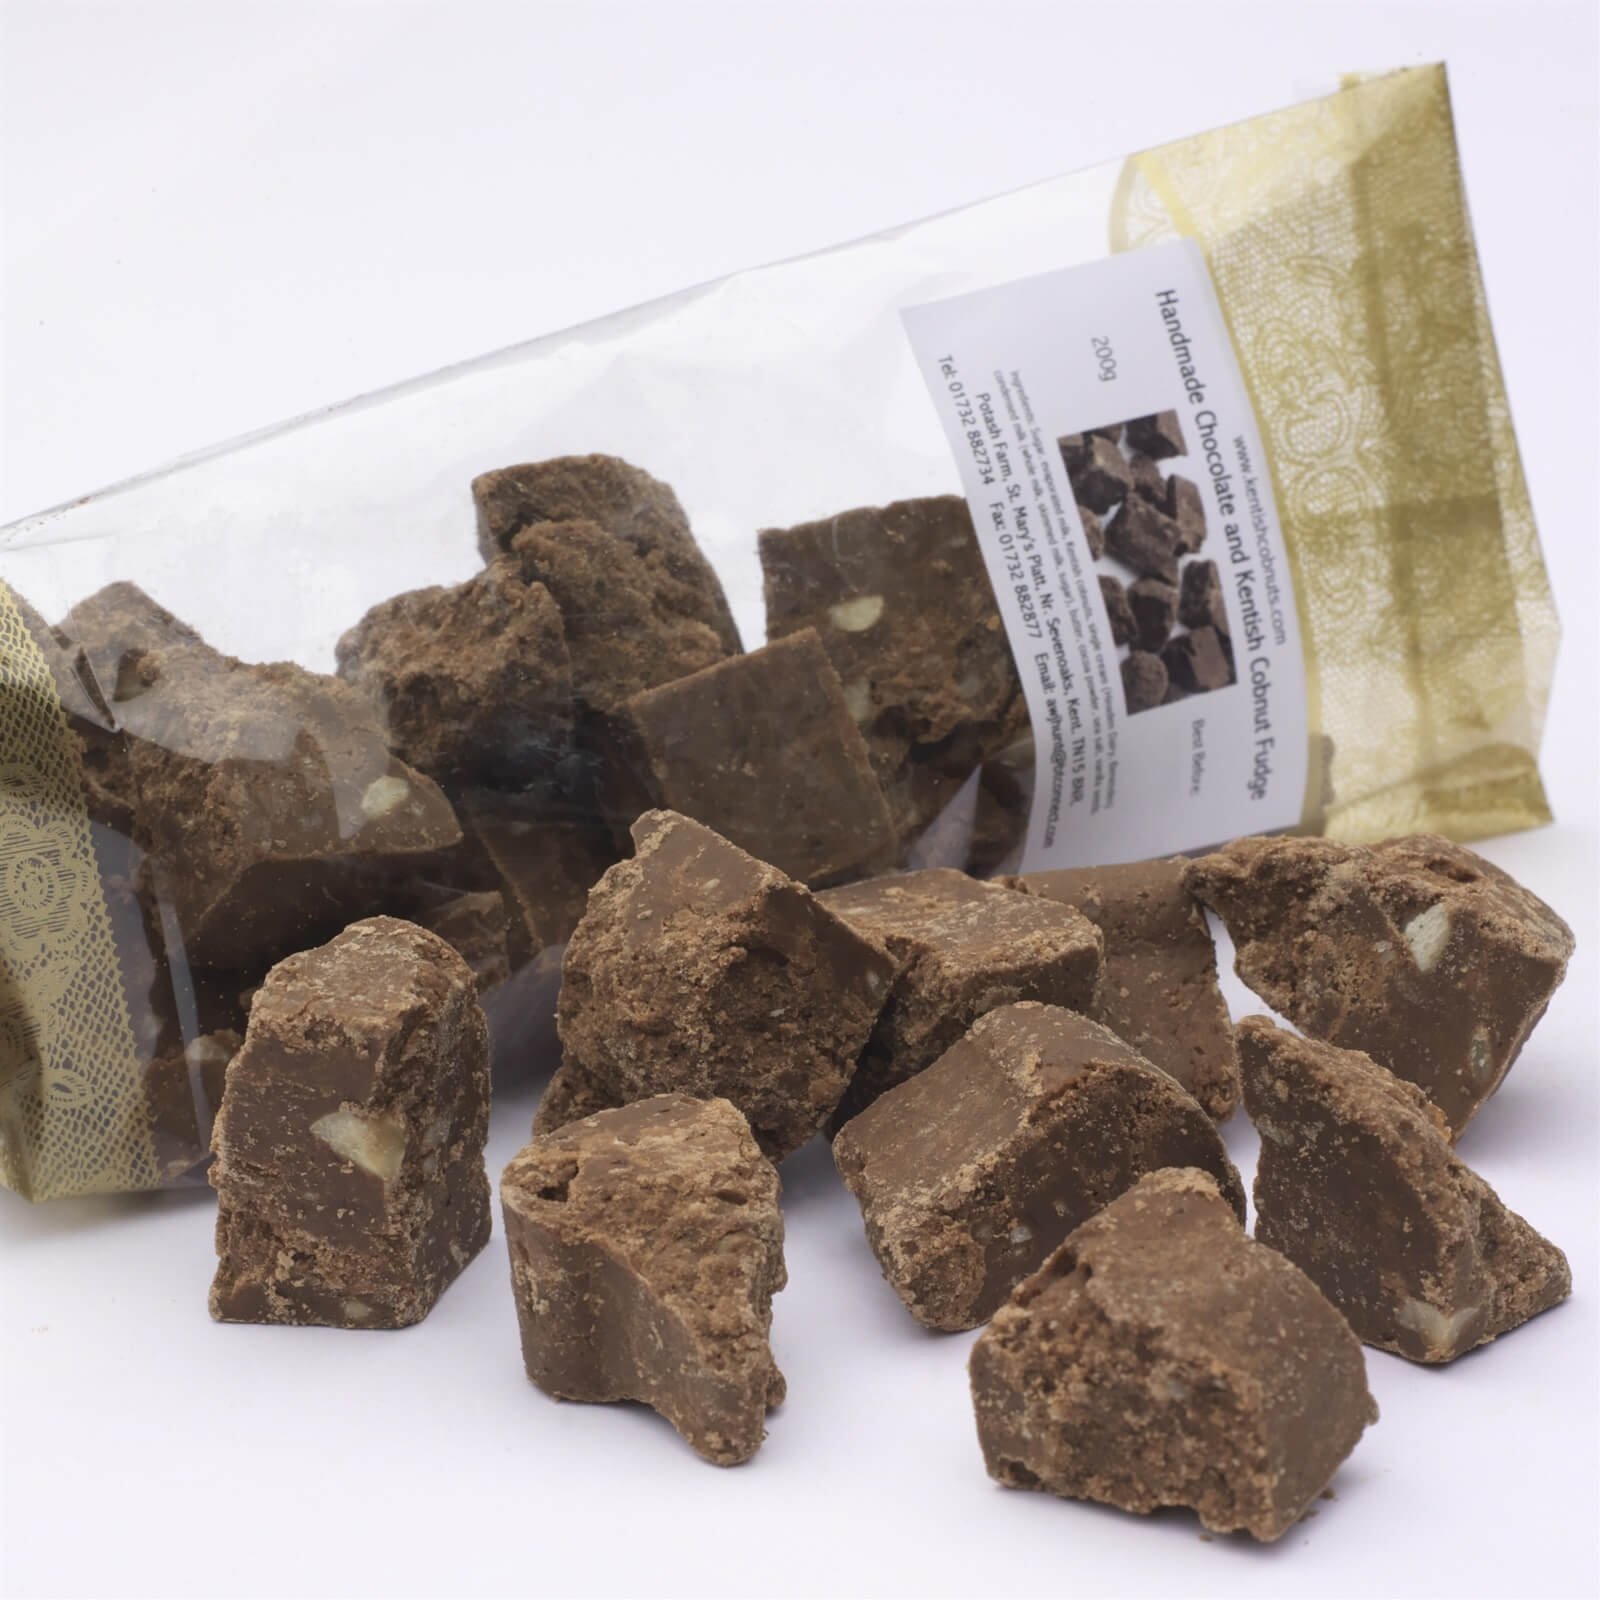 """Gregg Wallace, Daily Mail - """"One of my favourite producers, Potash Farm from my home county, Kent, has produced a deliciously decadent Chocolate and Kentish Cobnut Fudge. Not too sugary, the little crunchy pieces of nut with the soft fudge is a lovely combination of textures and flavours"""""""